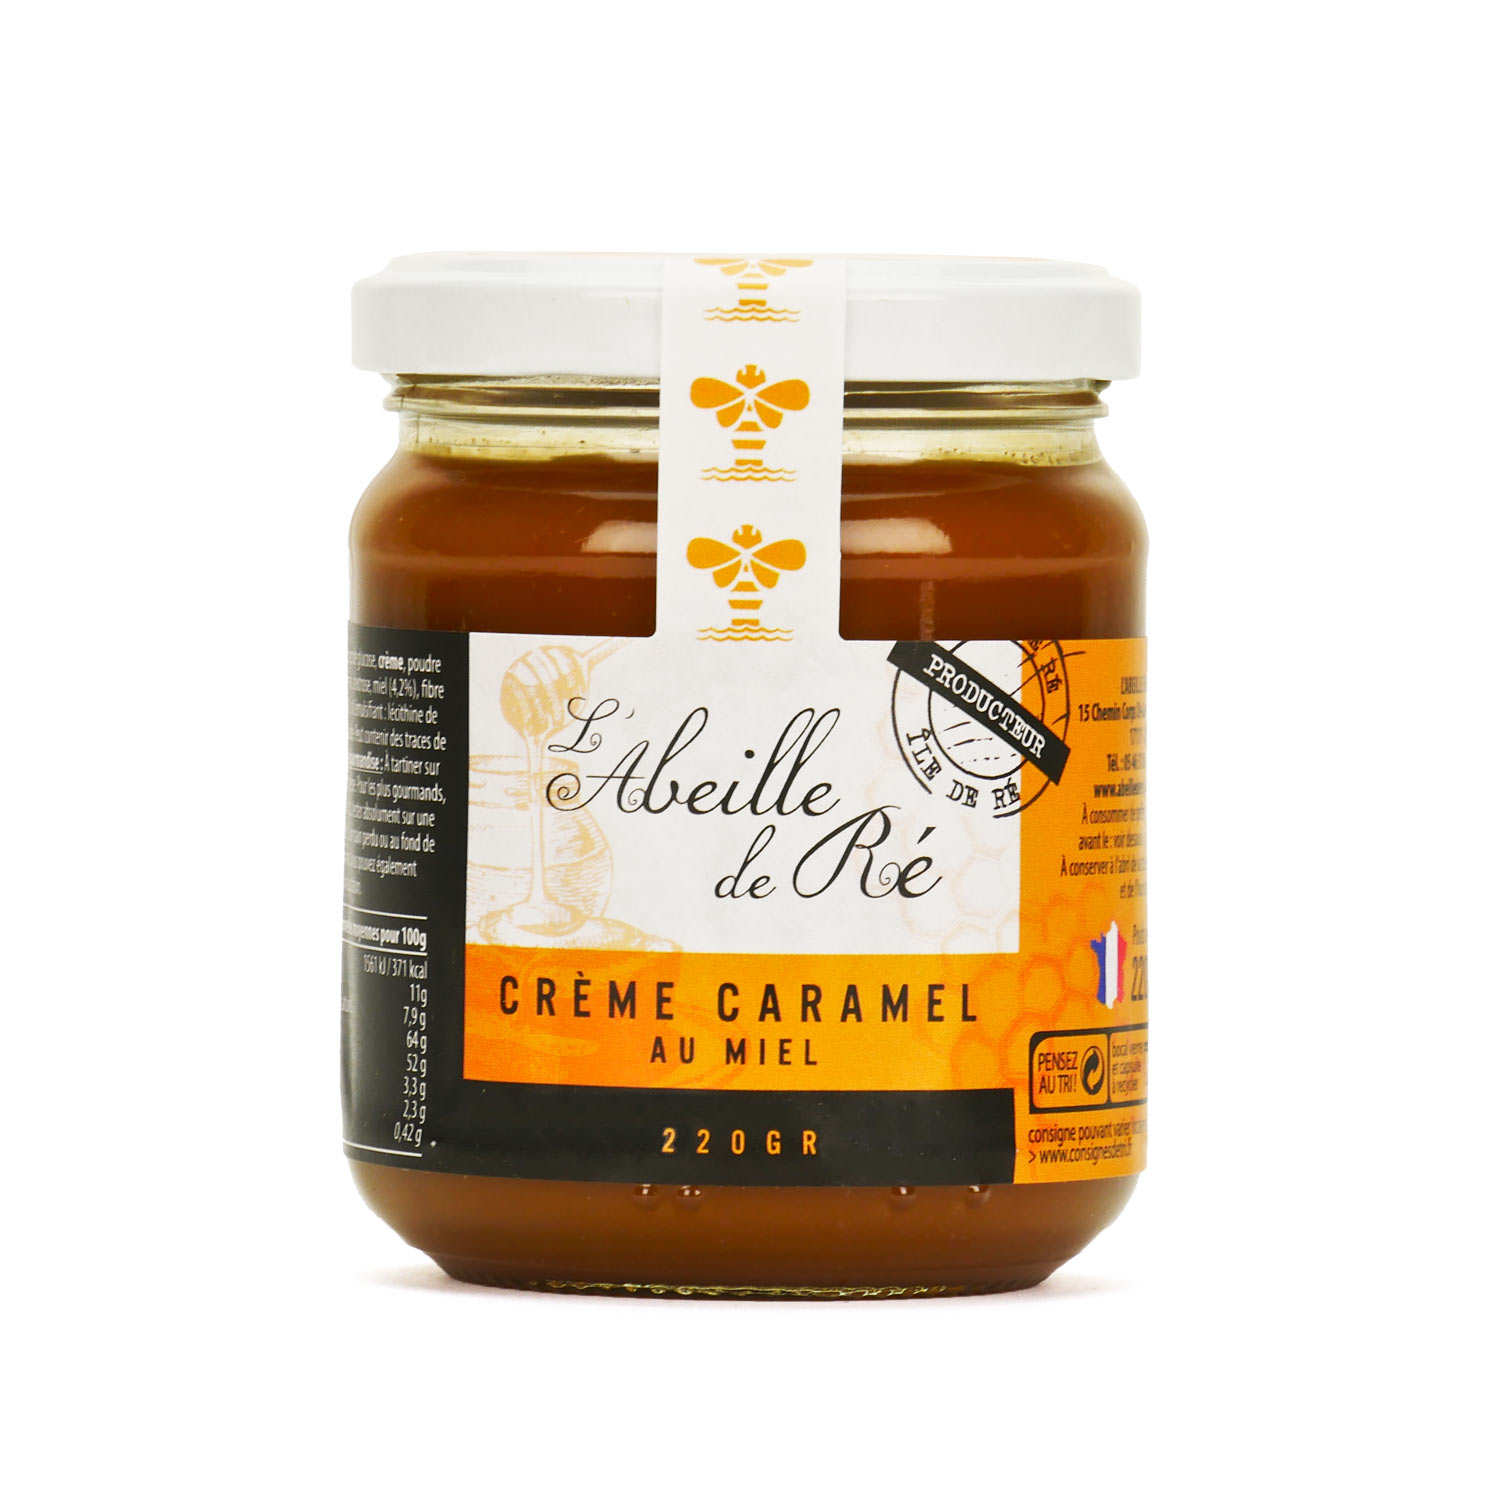 Caramel Cream with Honey from Charente Maritime